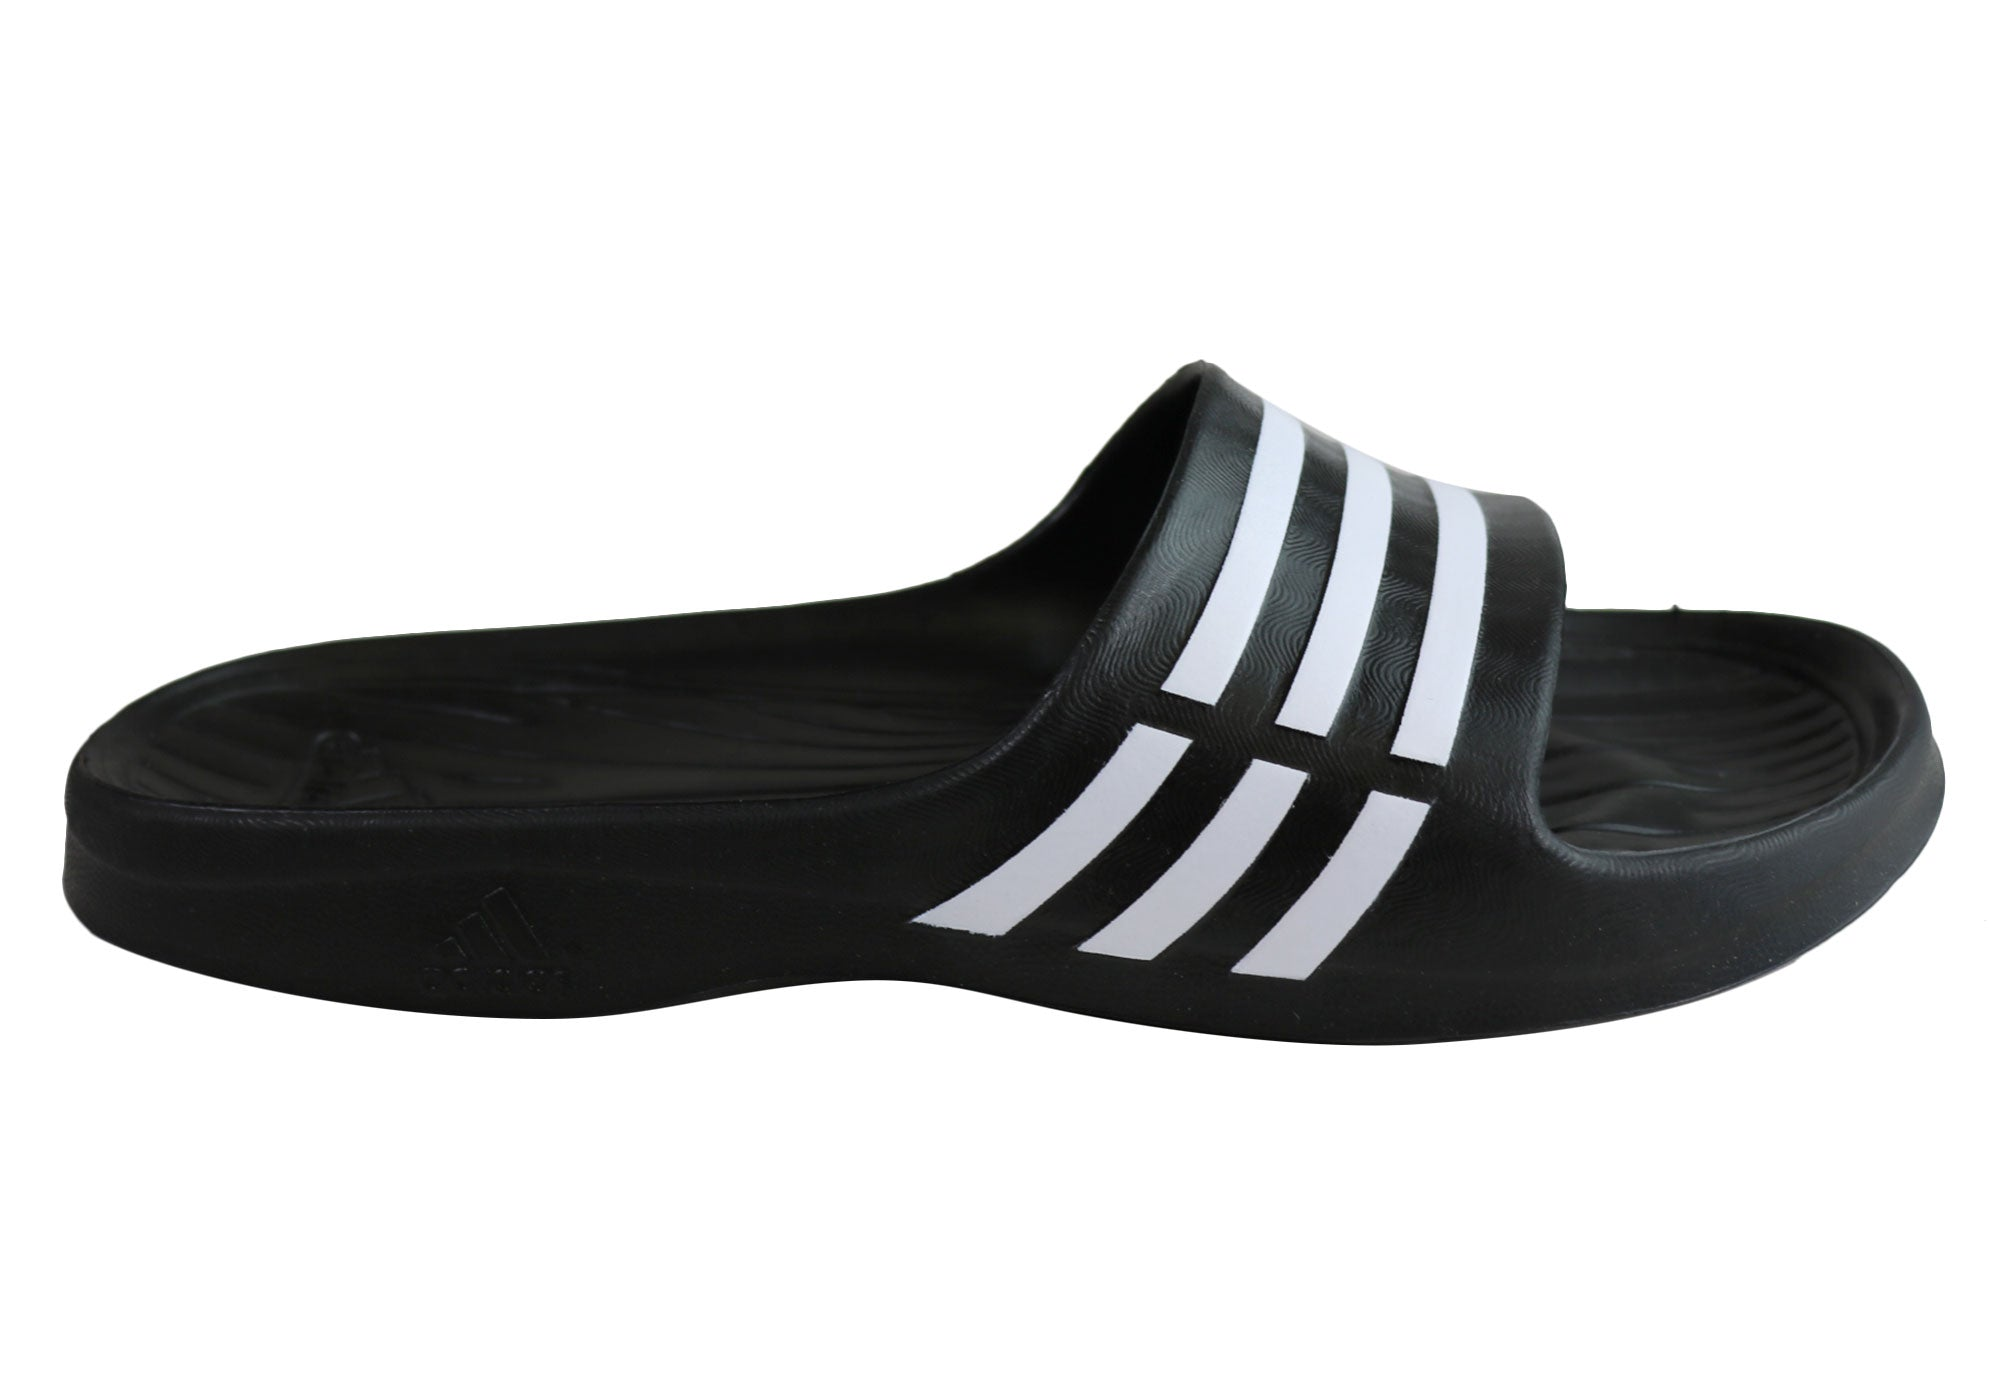 339b174e1546 New Adidas Duramo Sleek Womens Comfortable Slide Sandals